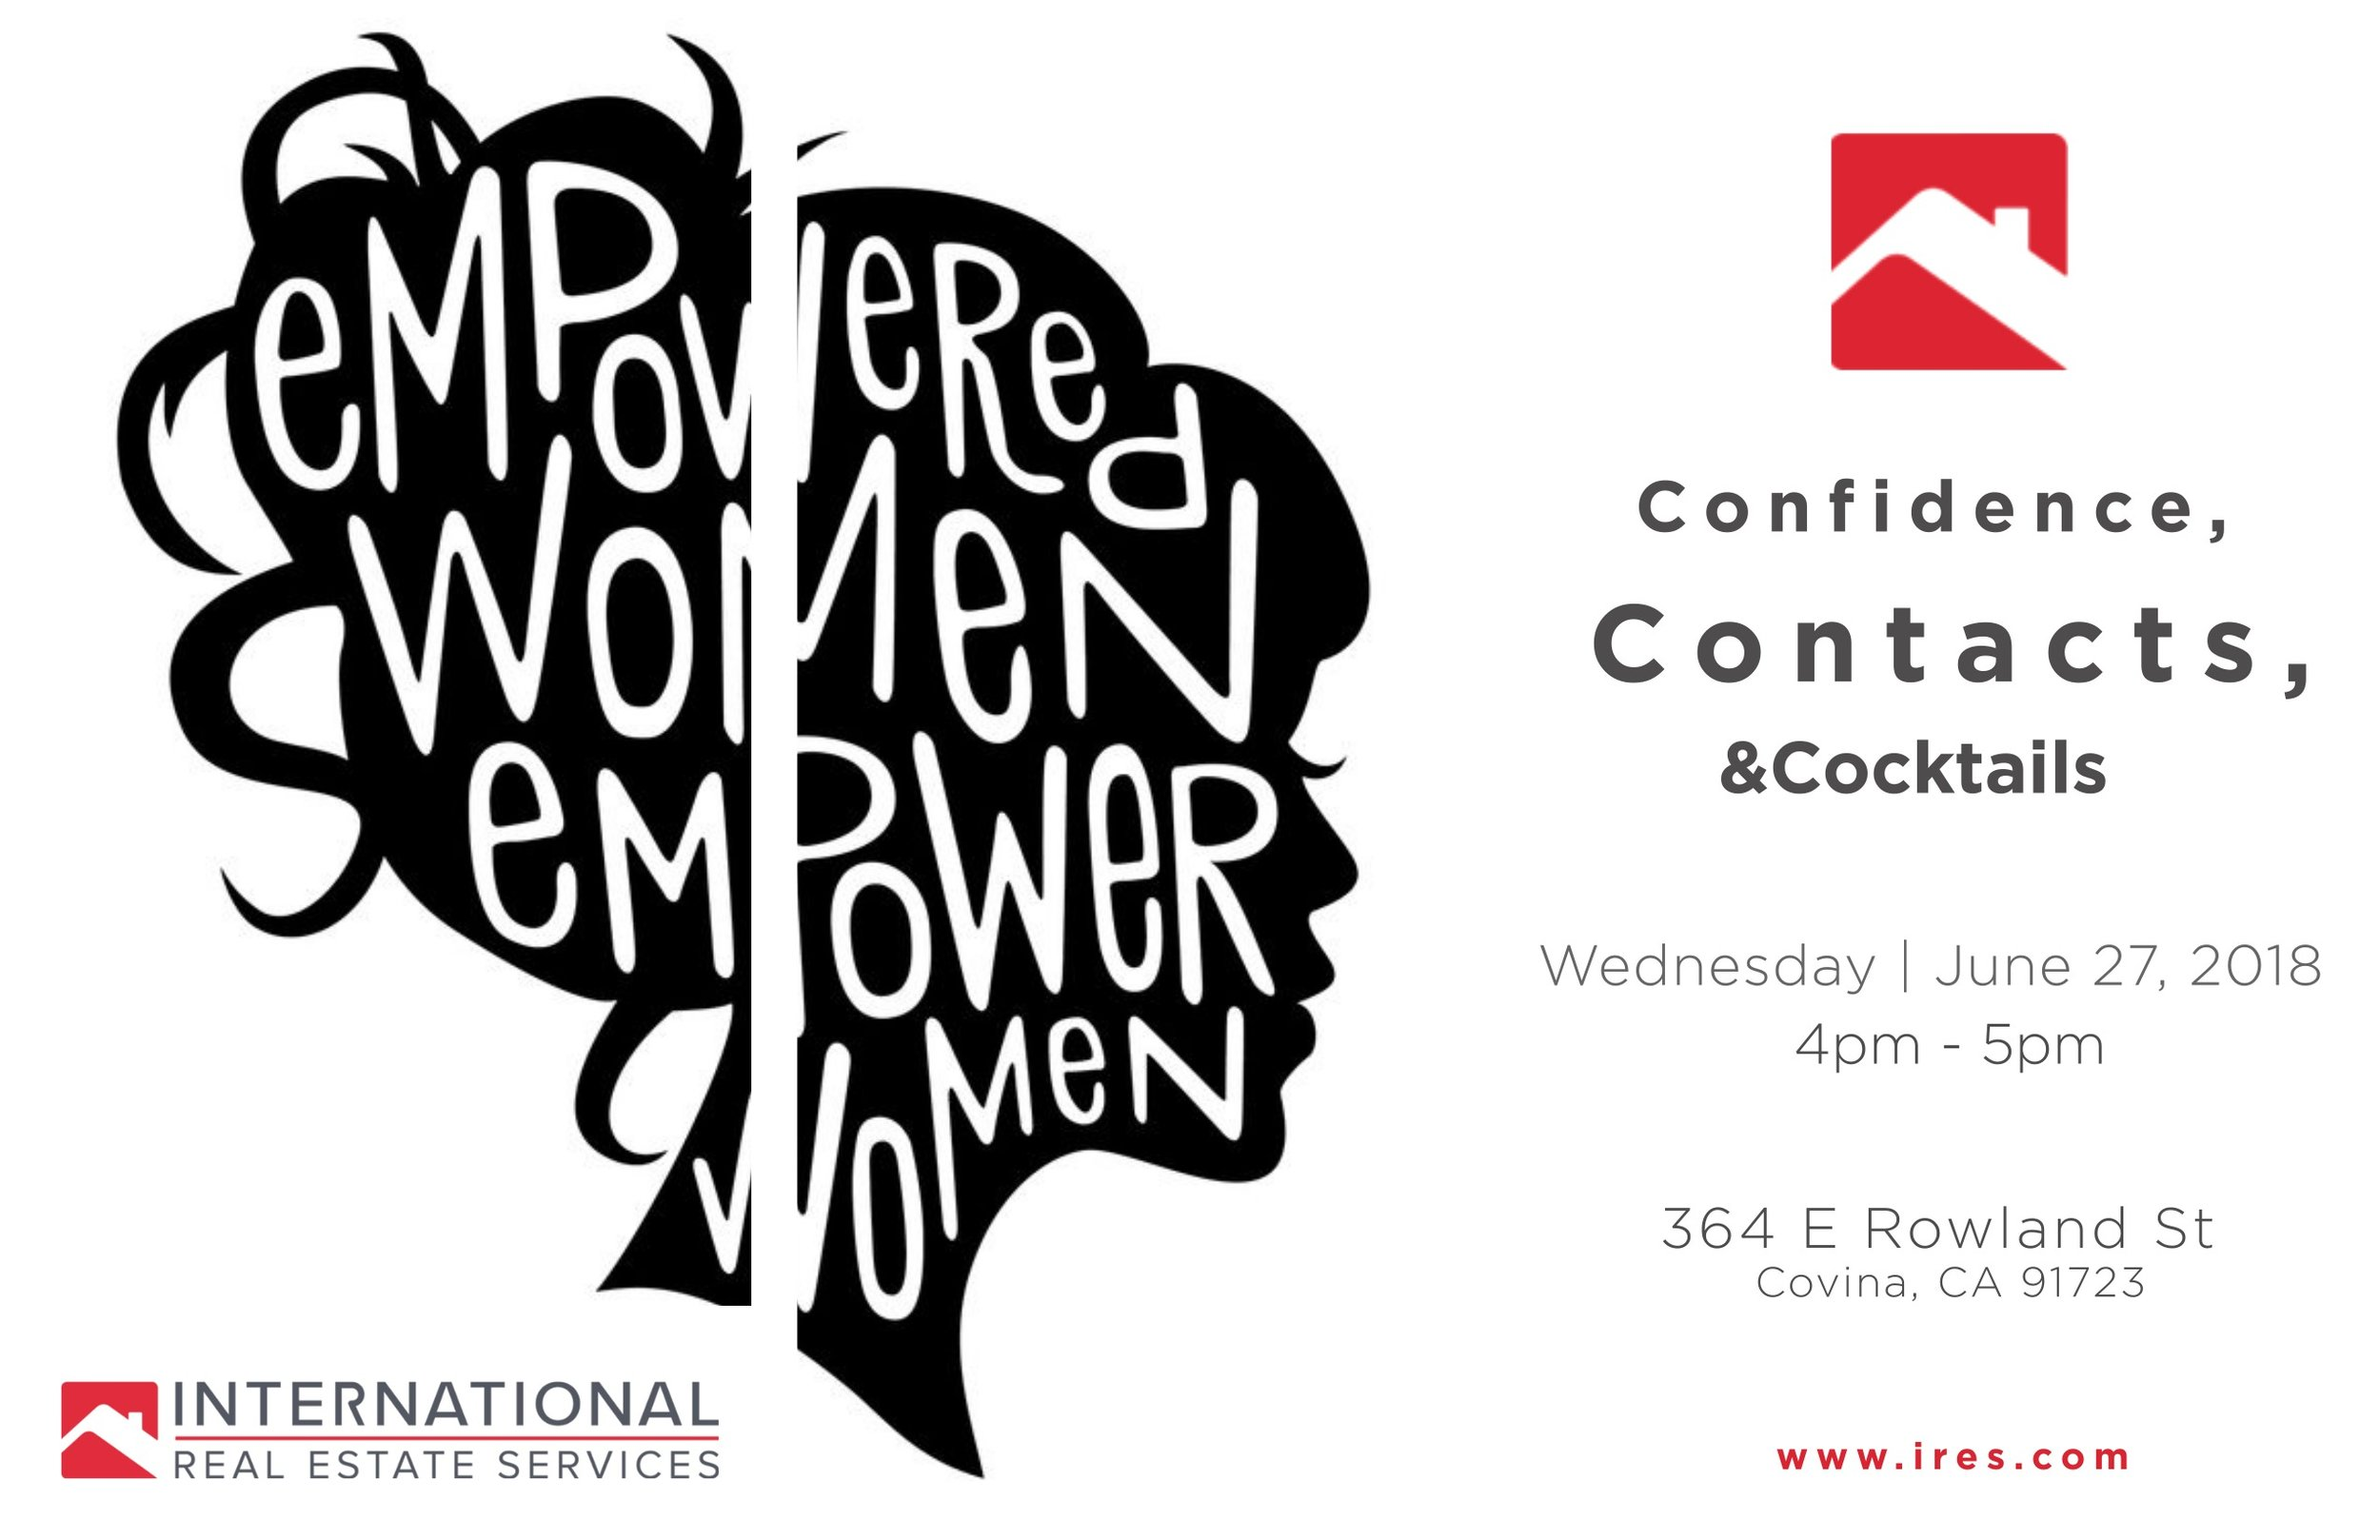 Join Crystal for her monthly C3 training for our IRES ladies.